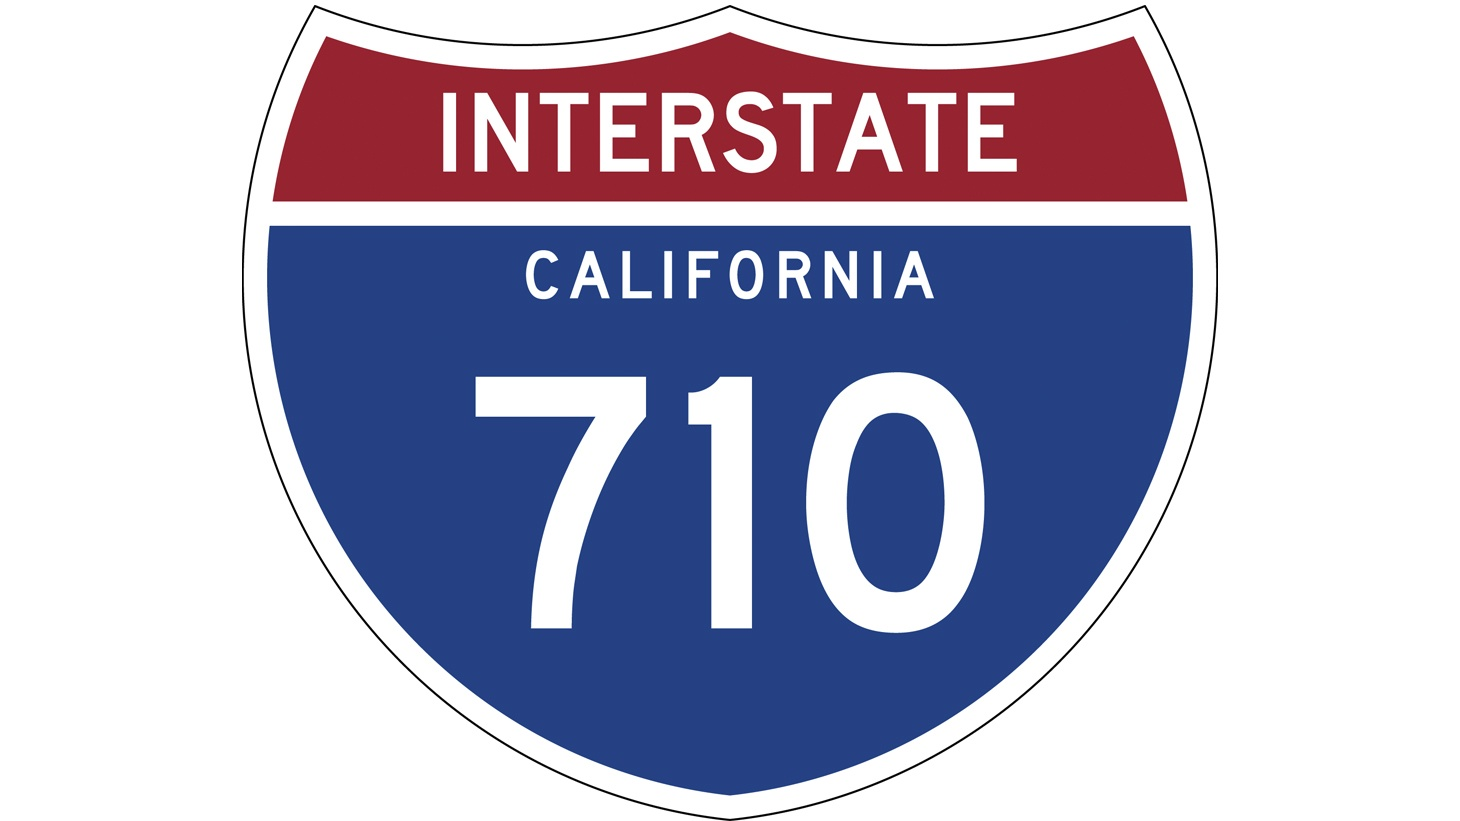 The I-710 sign.